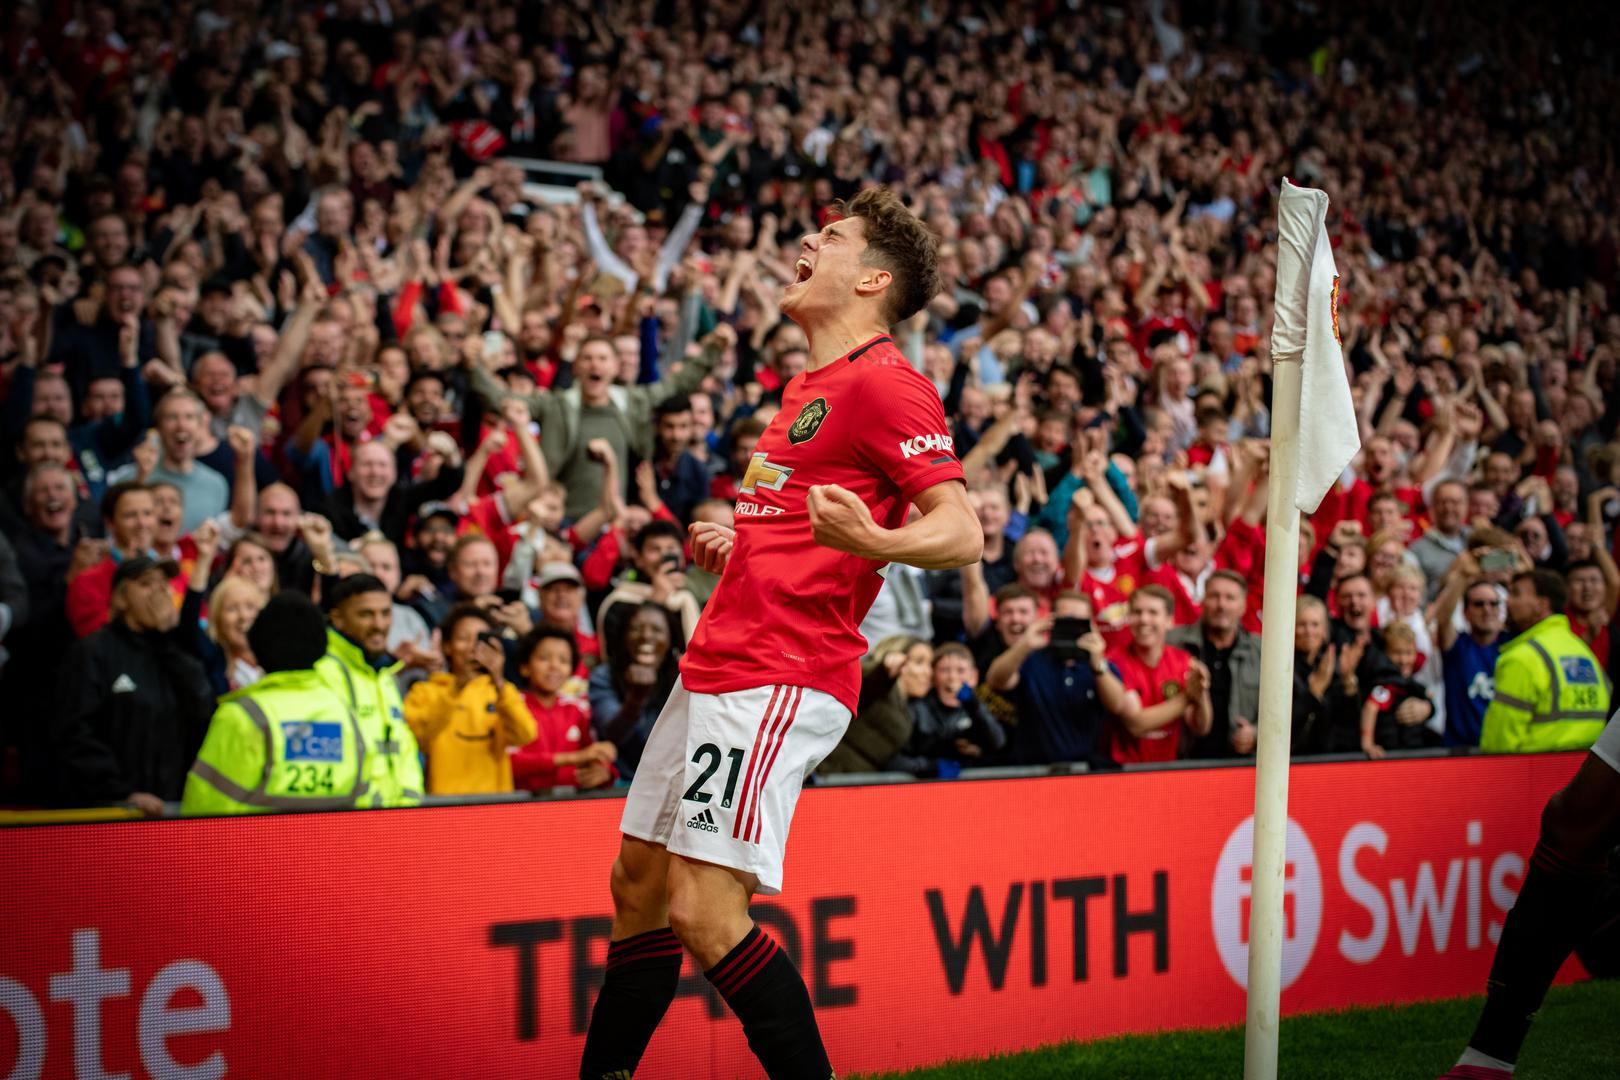 El momento inolvidable de Daniel James.